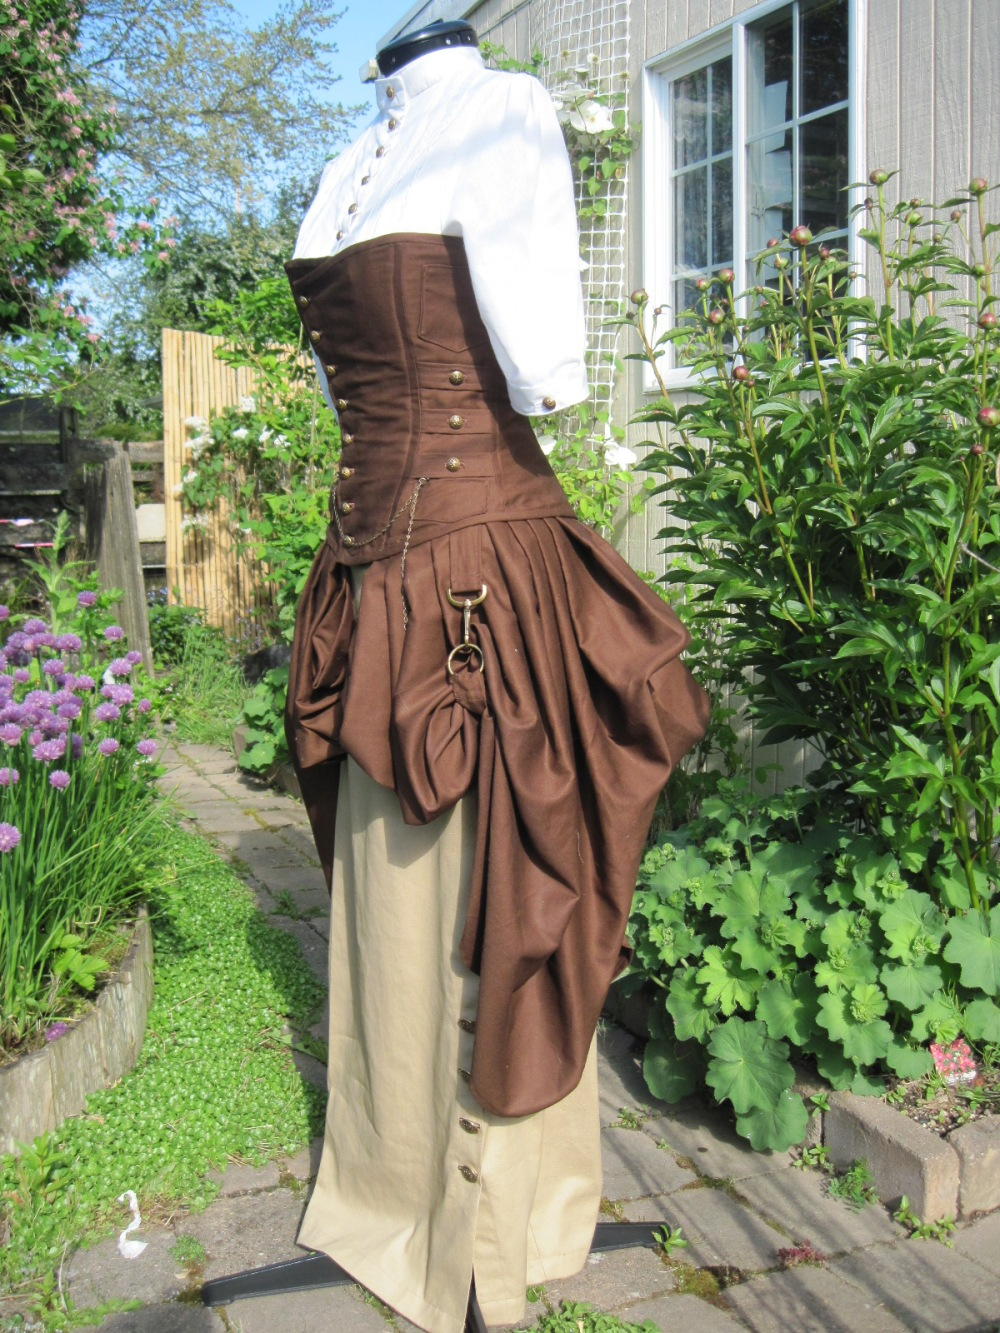 A side view of Philomena's costume.